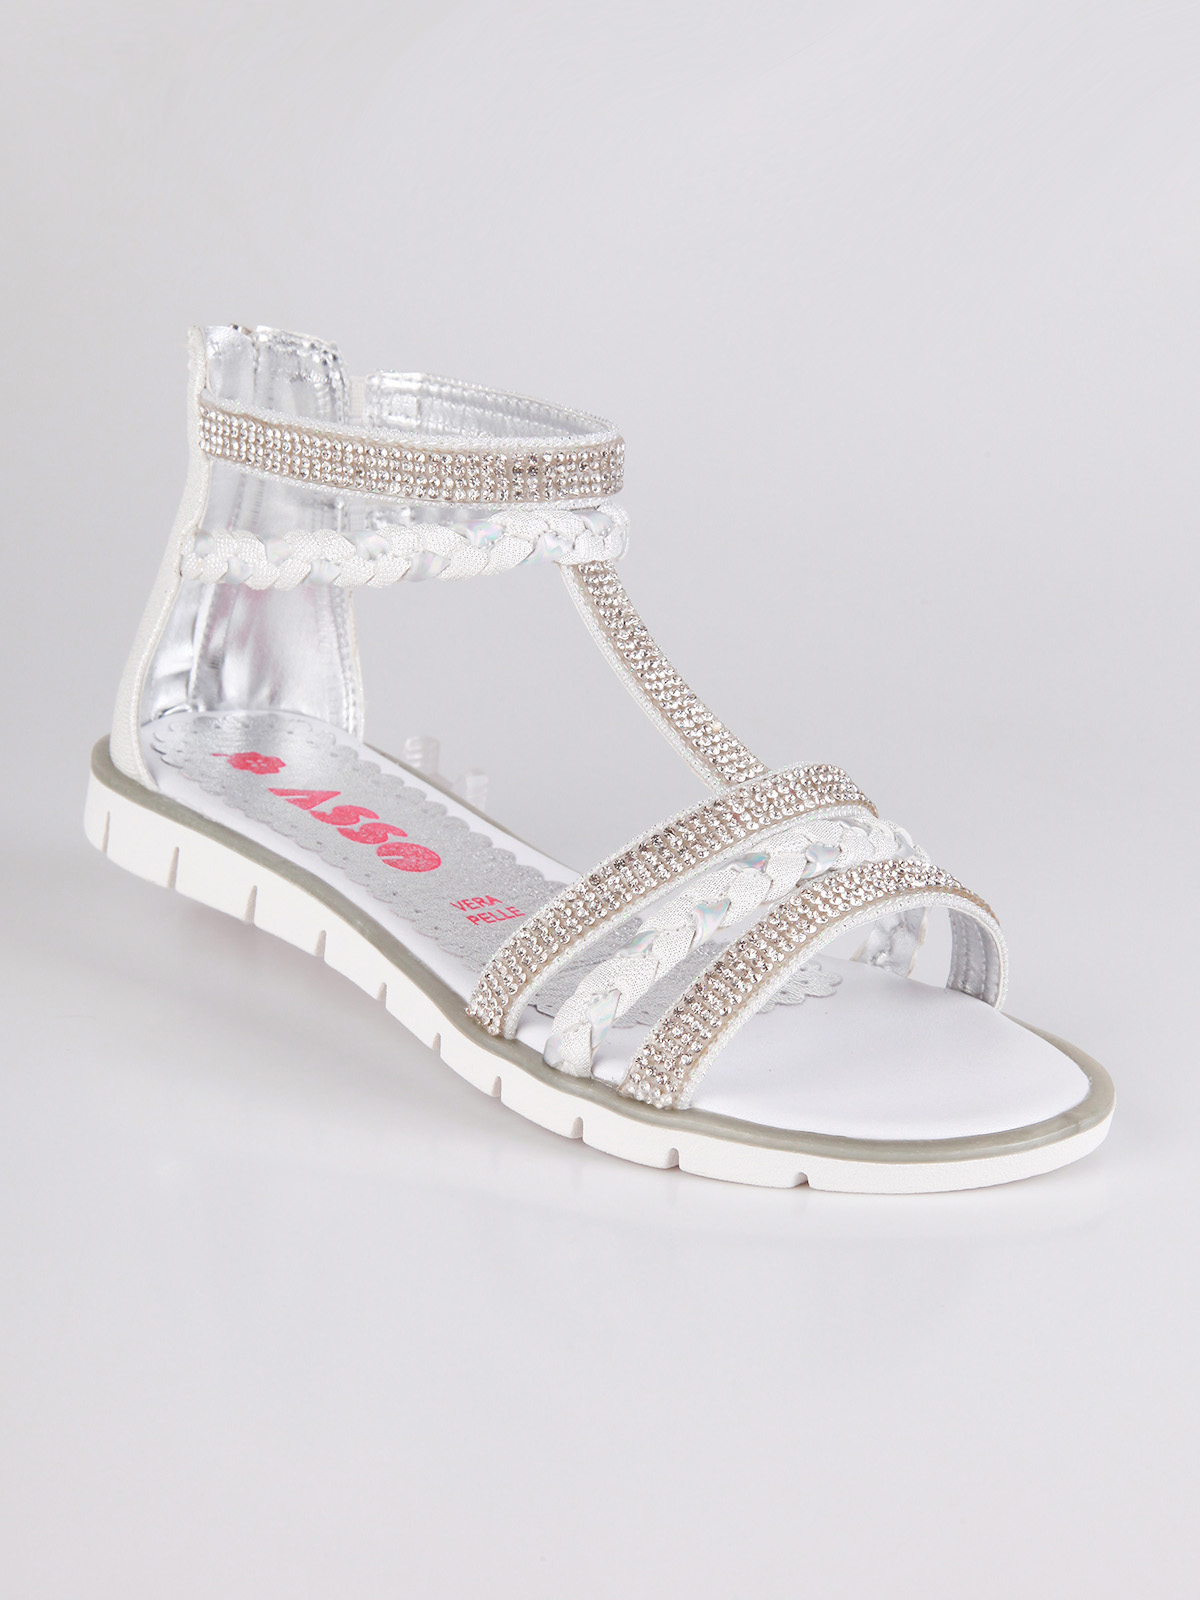 ACE White Sandals With Rhinestone